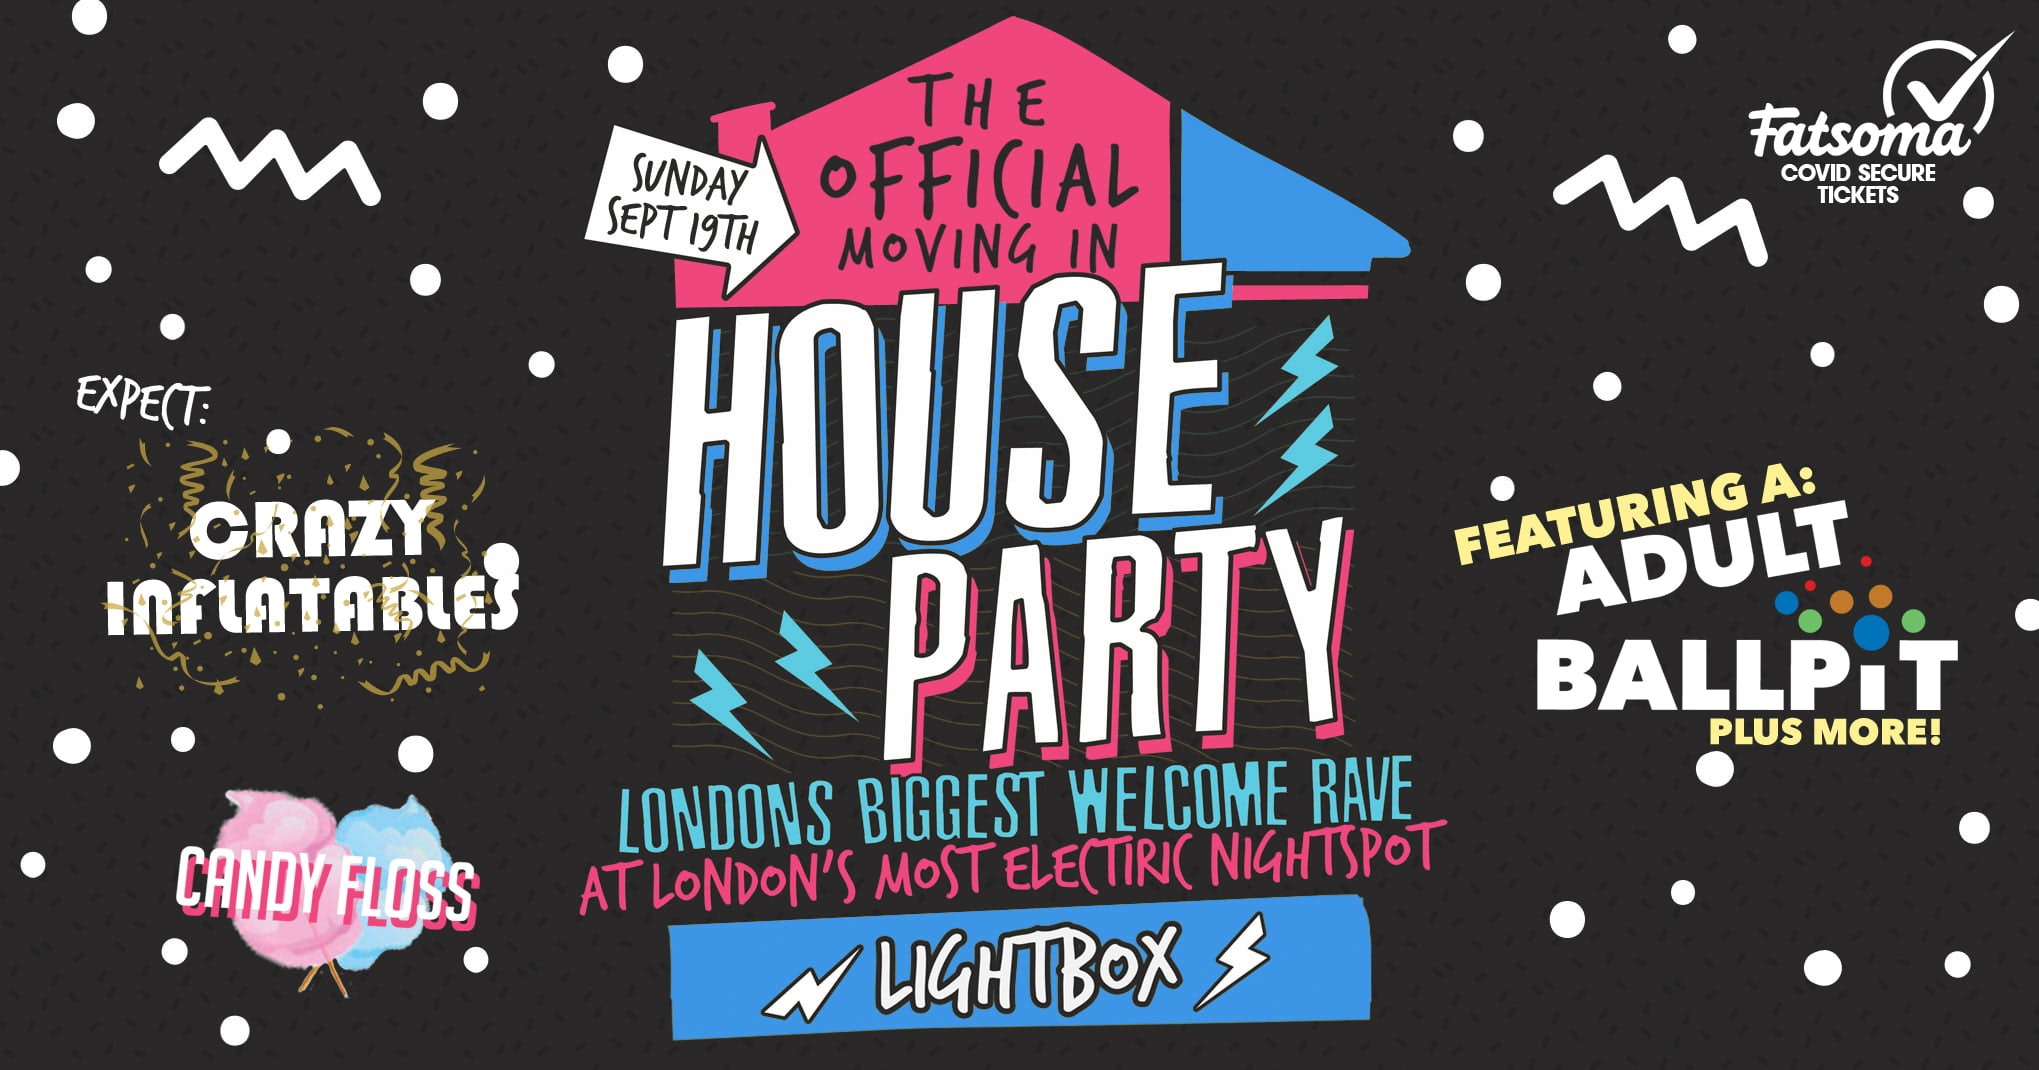 The London Freshers Official Moving In House Party 🎈💊 Live From Lightbox 😲